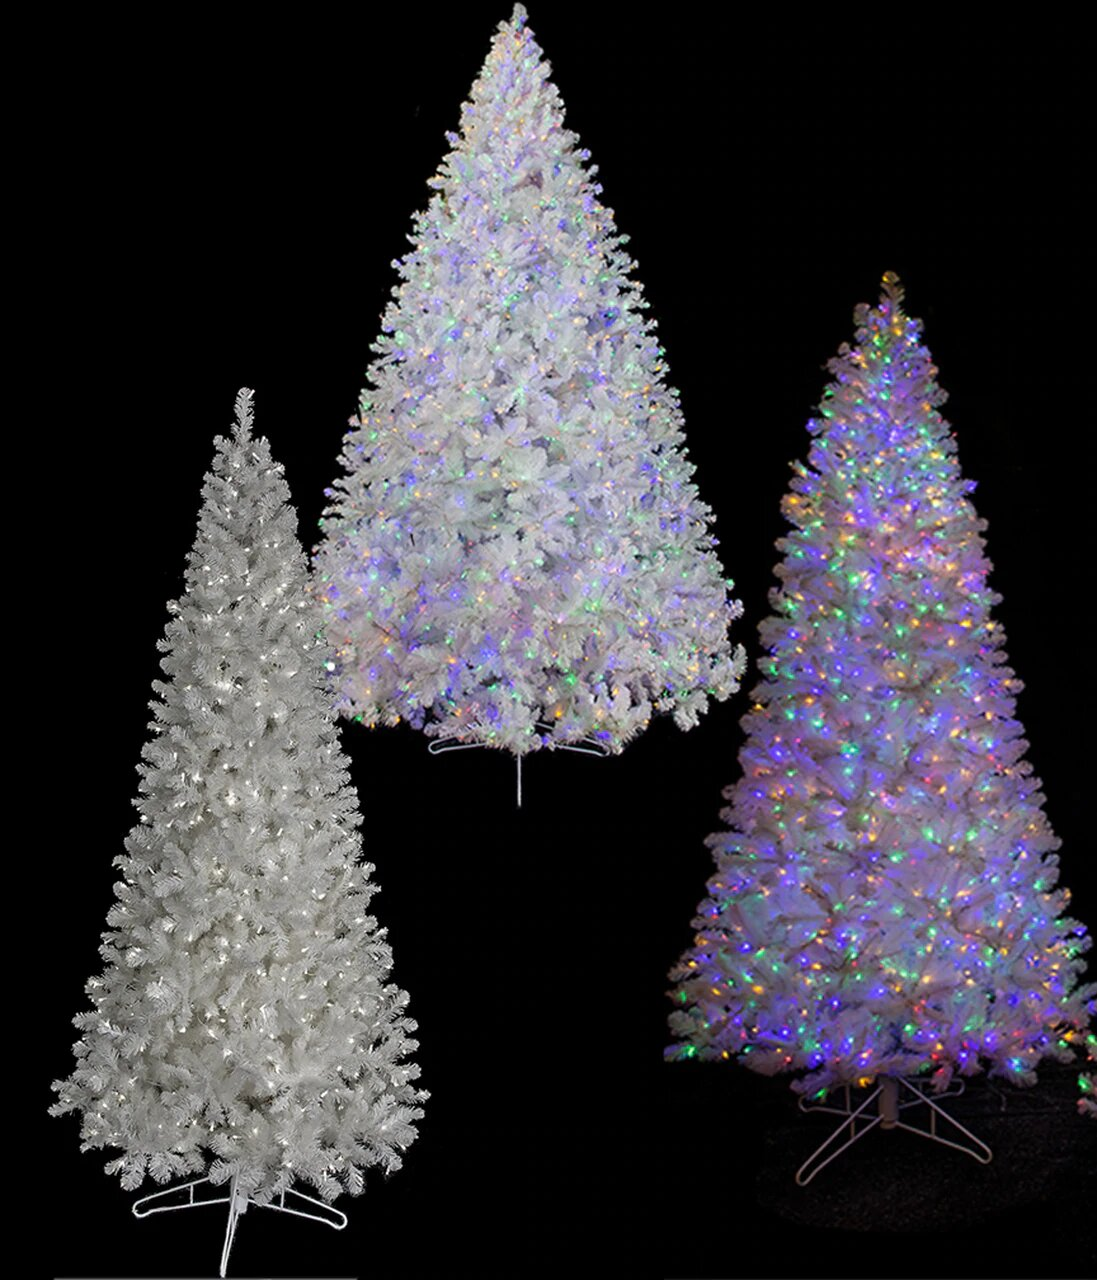 Earthflora Silver And White Trees Earthflora S C 195408options Snowy White Spruce Artificial Christmas Trees Winter White Or Multi Colored Led Lights